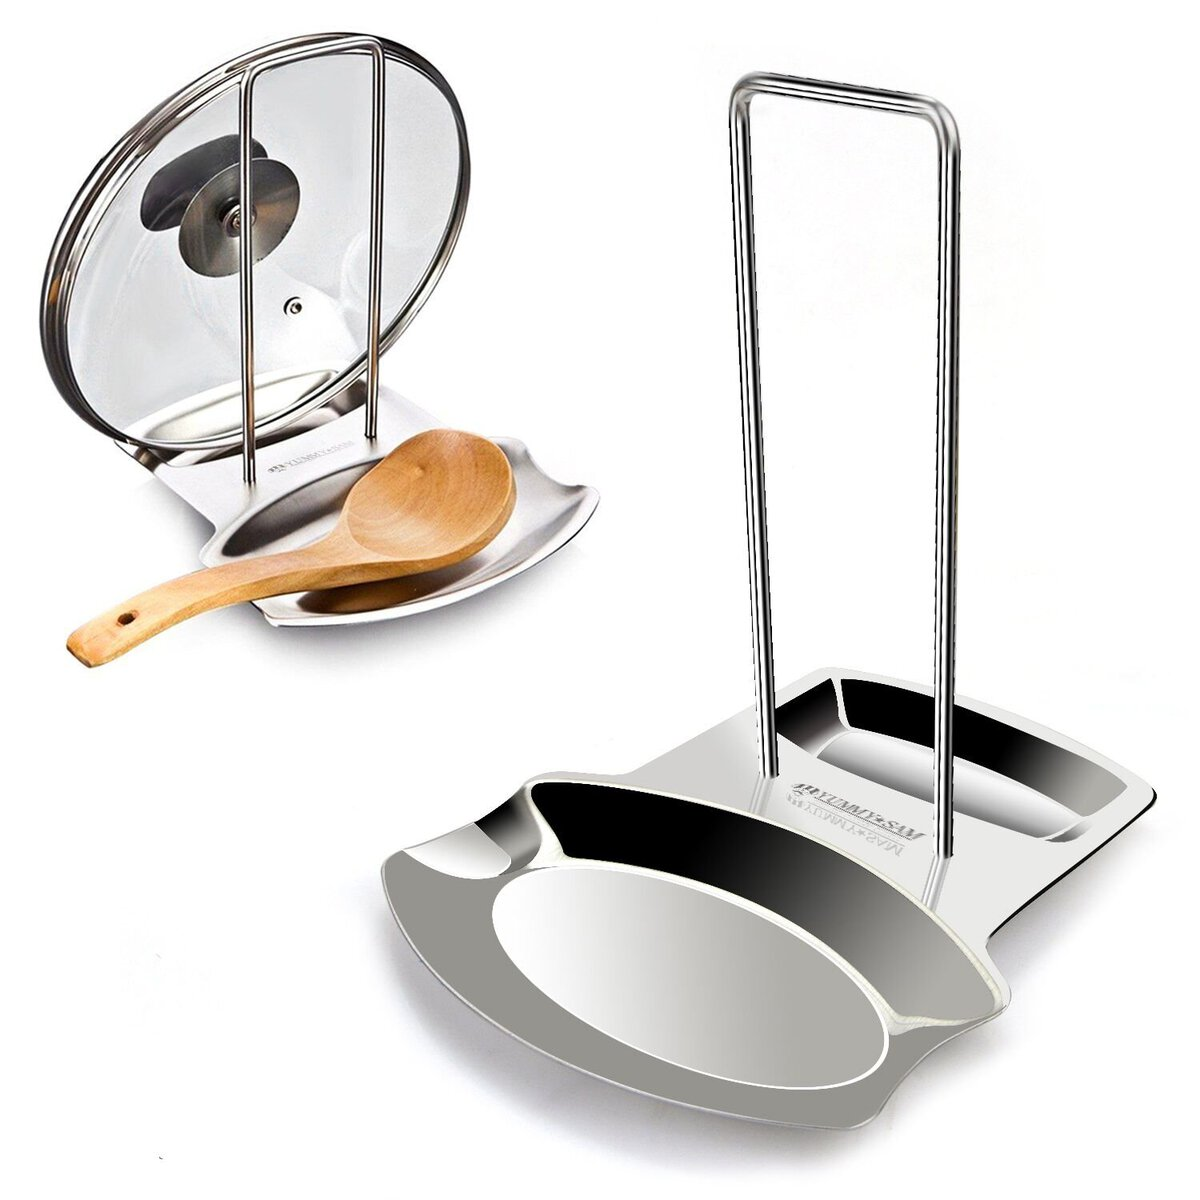 cool kitchen gadgets - spoon and lid holder